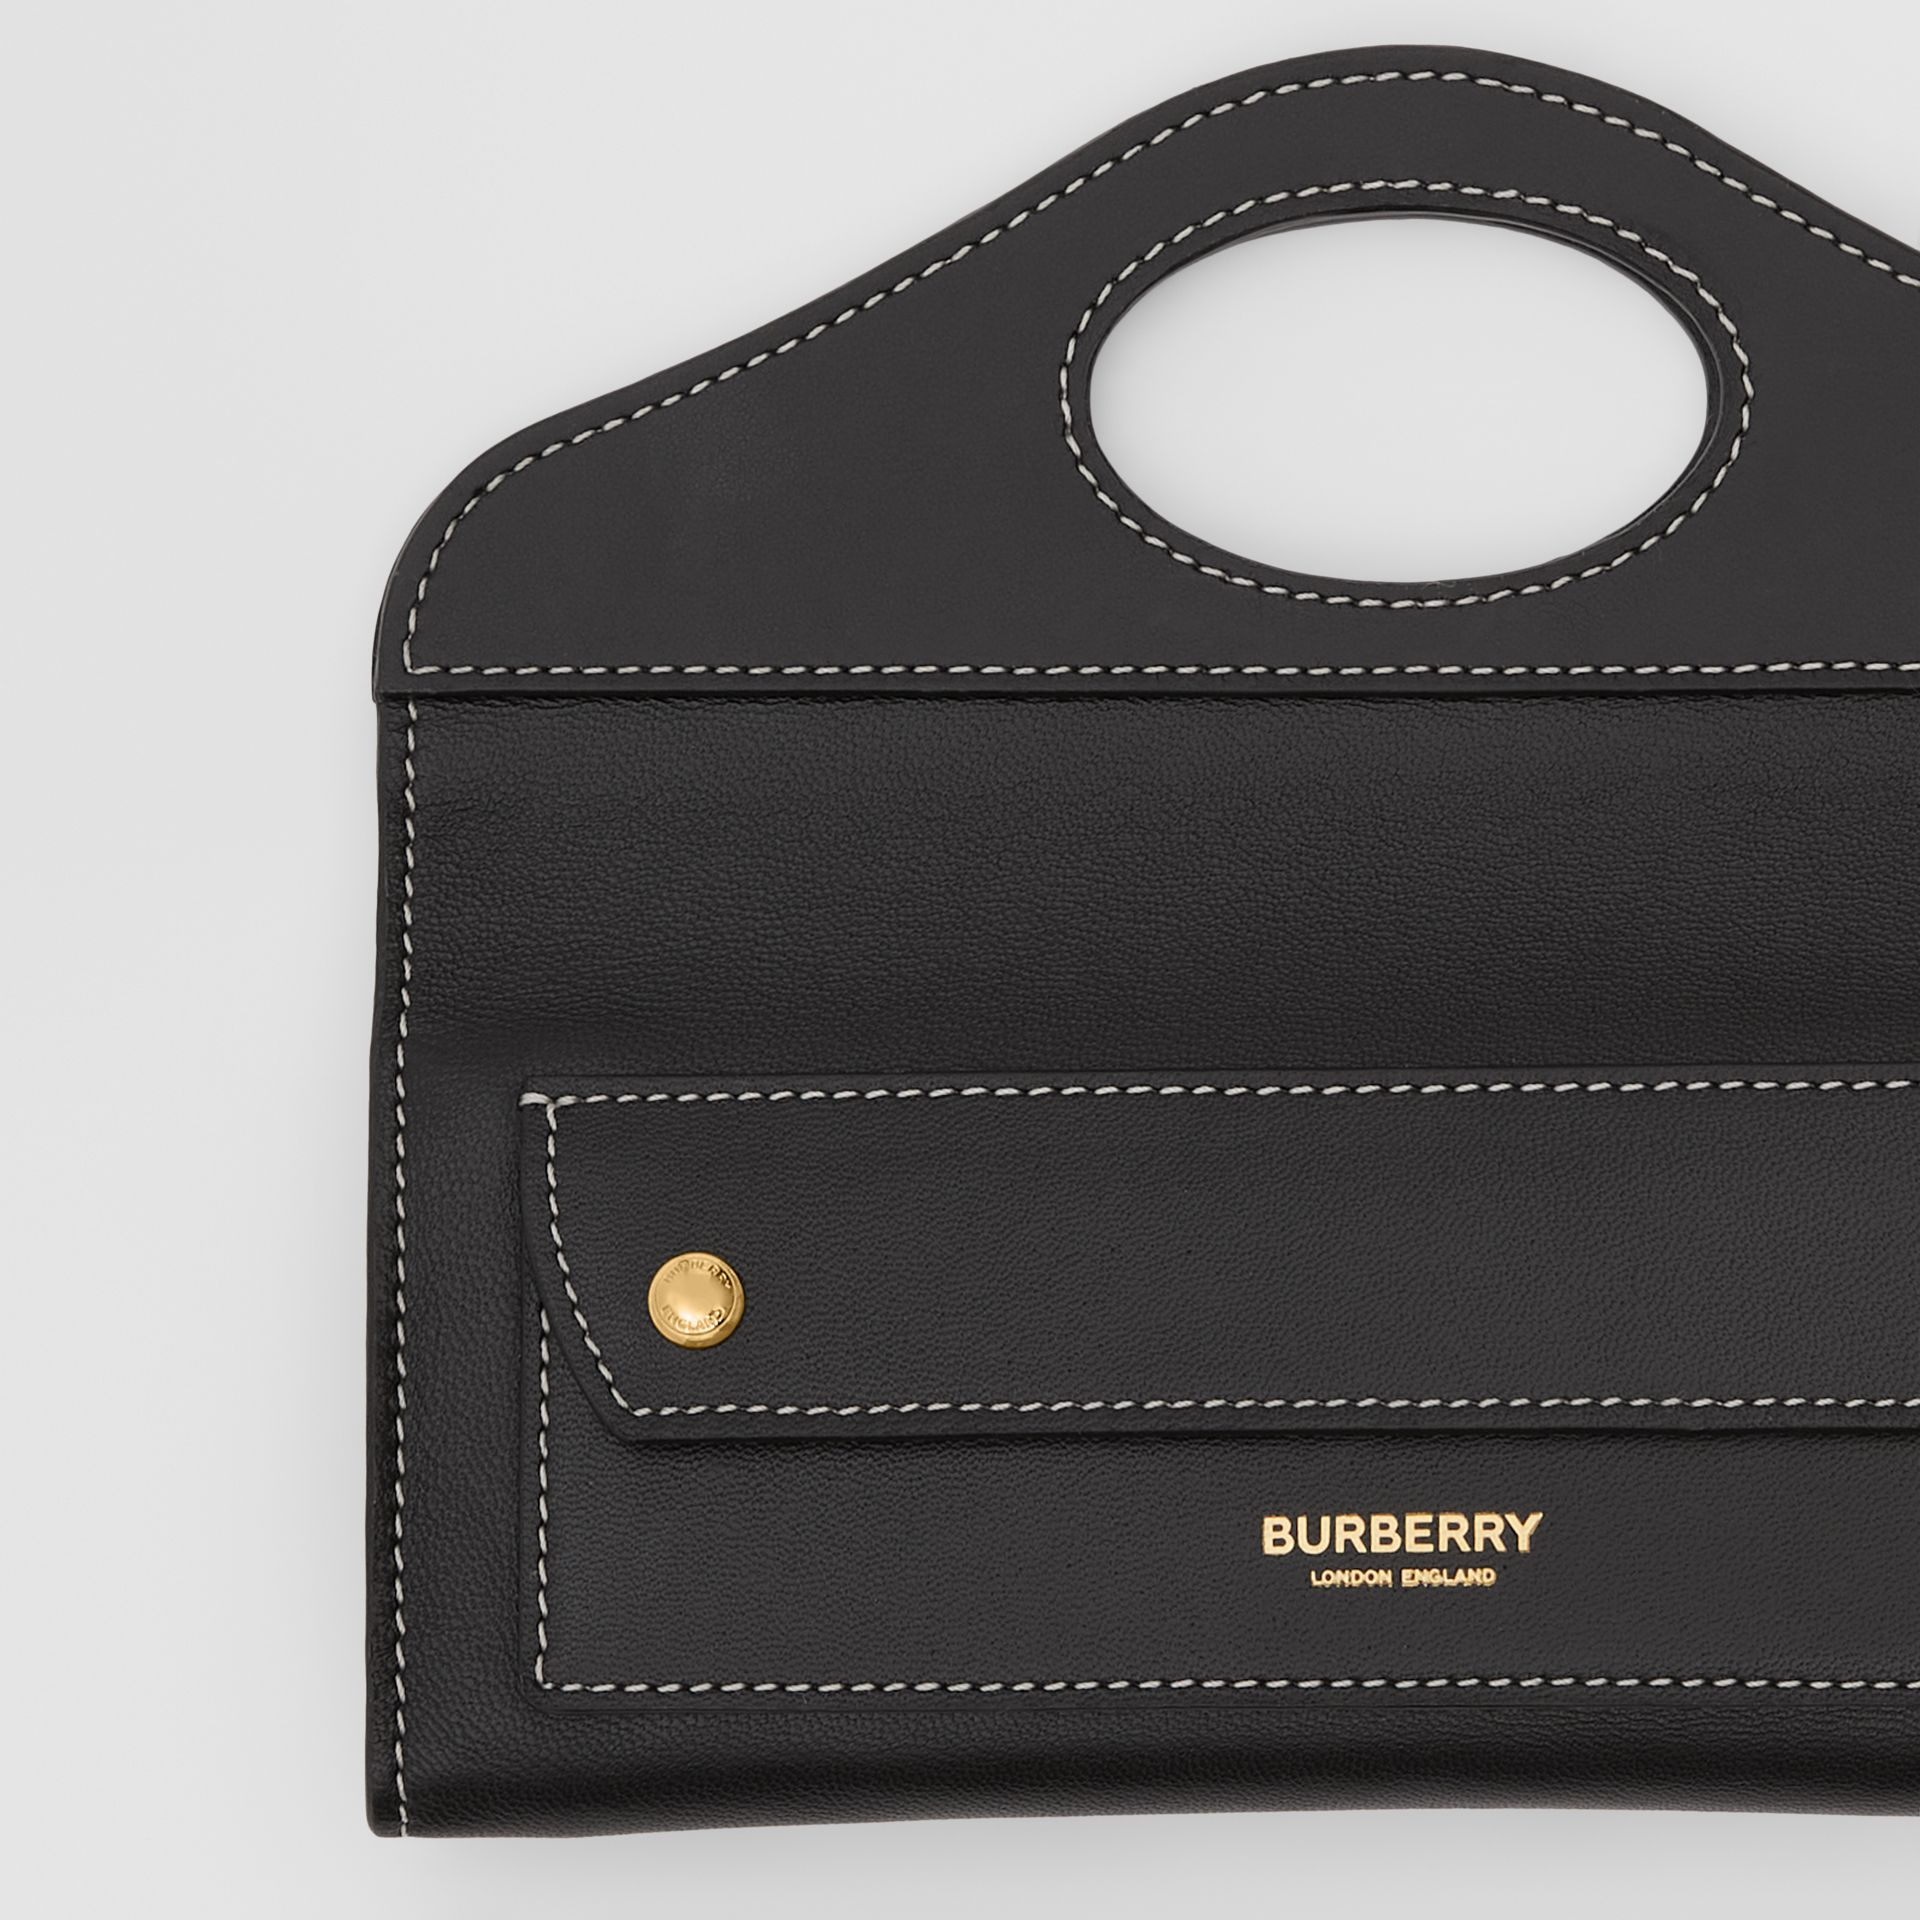 Mini Topstitched Lambskin Pocket Clutch in Black | Burberry - gallery image 1